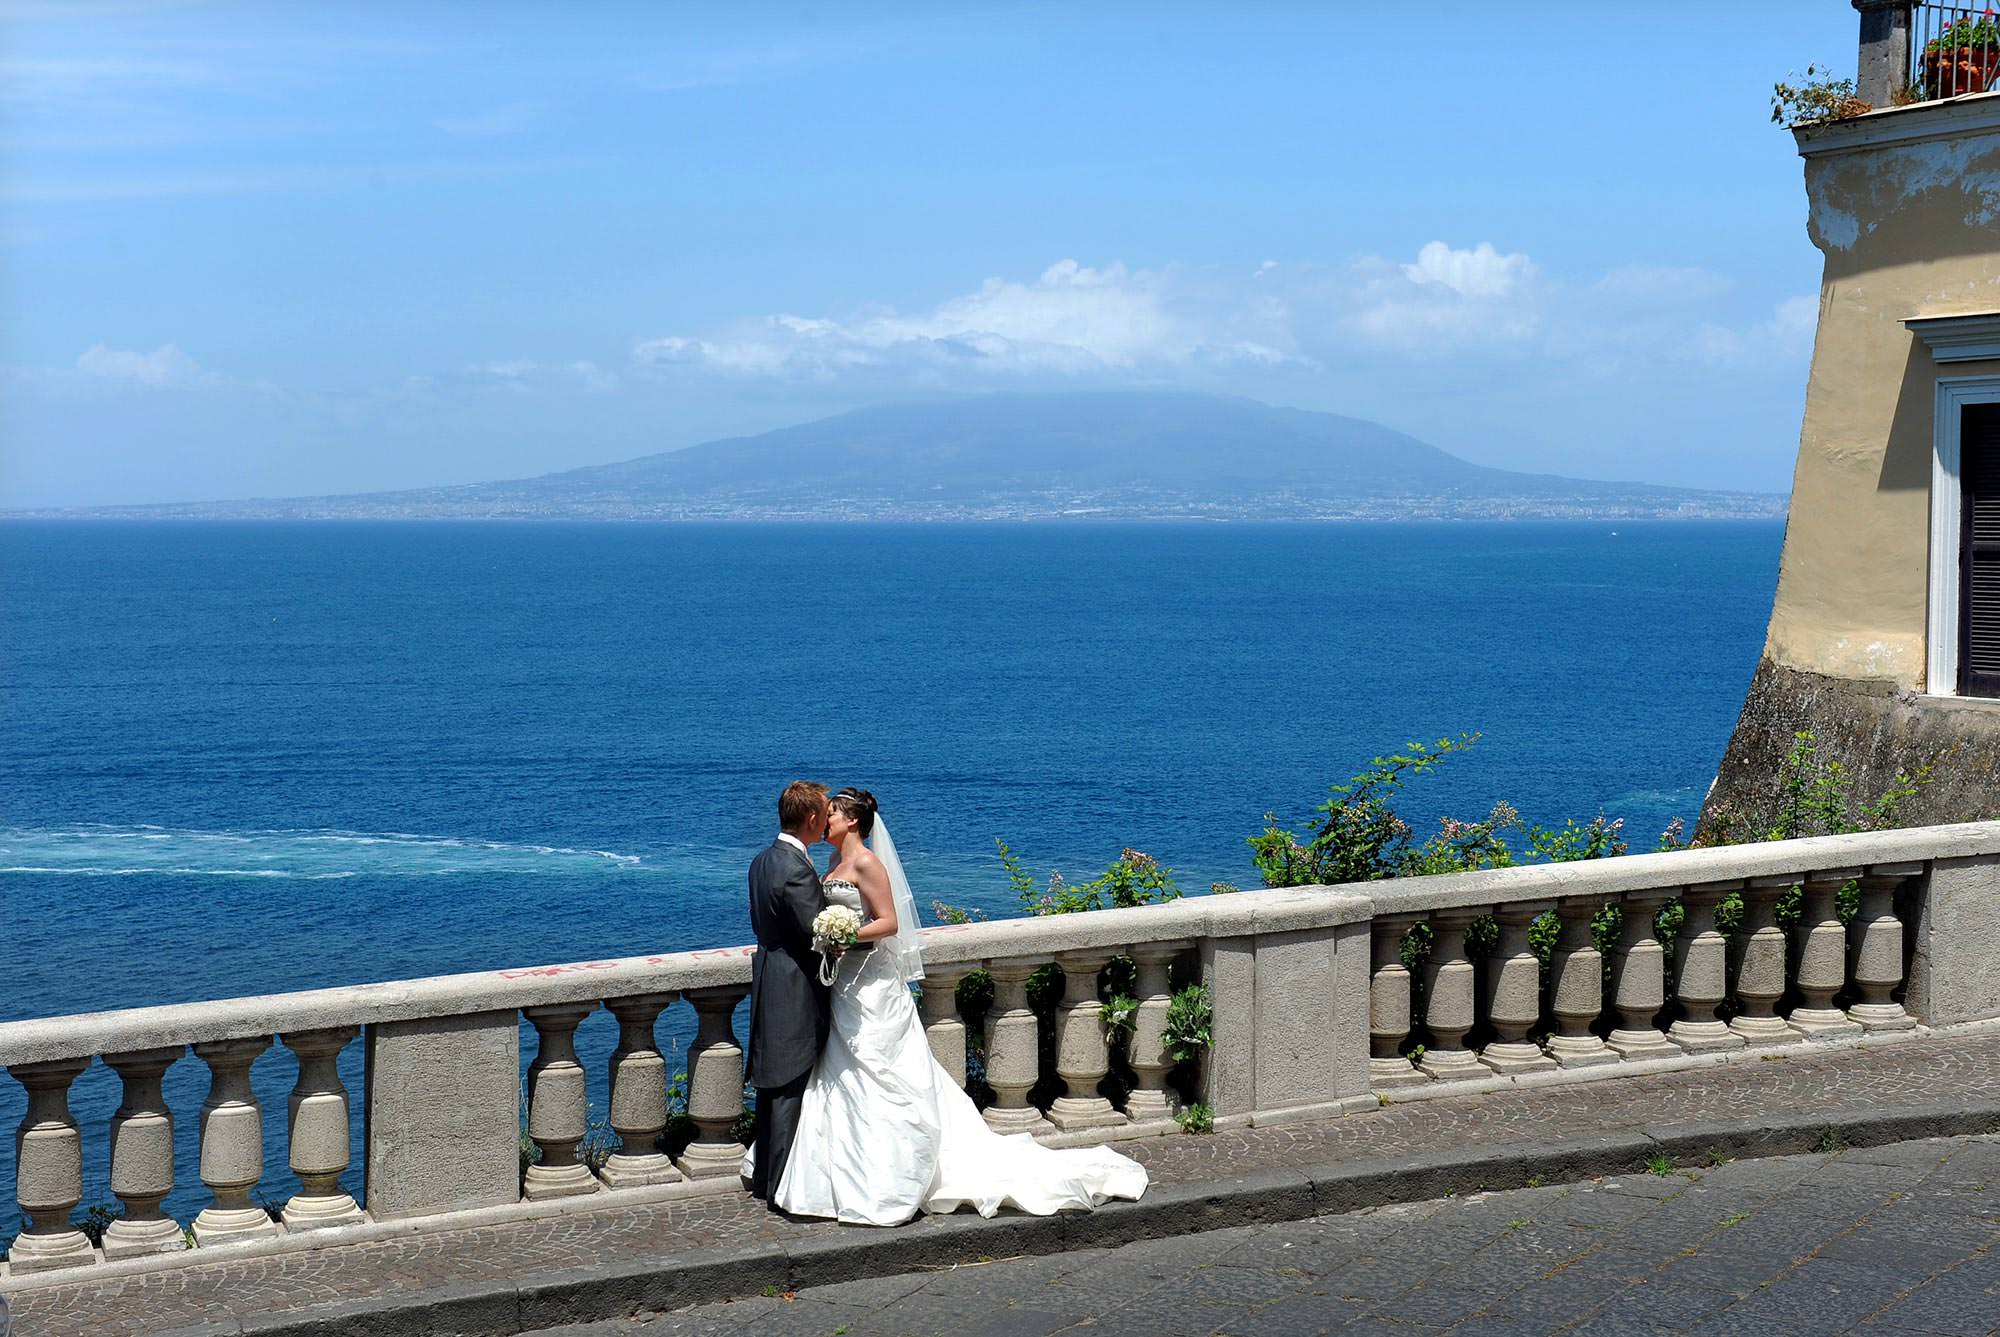 Wedding in Sorrento, Italy